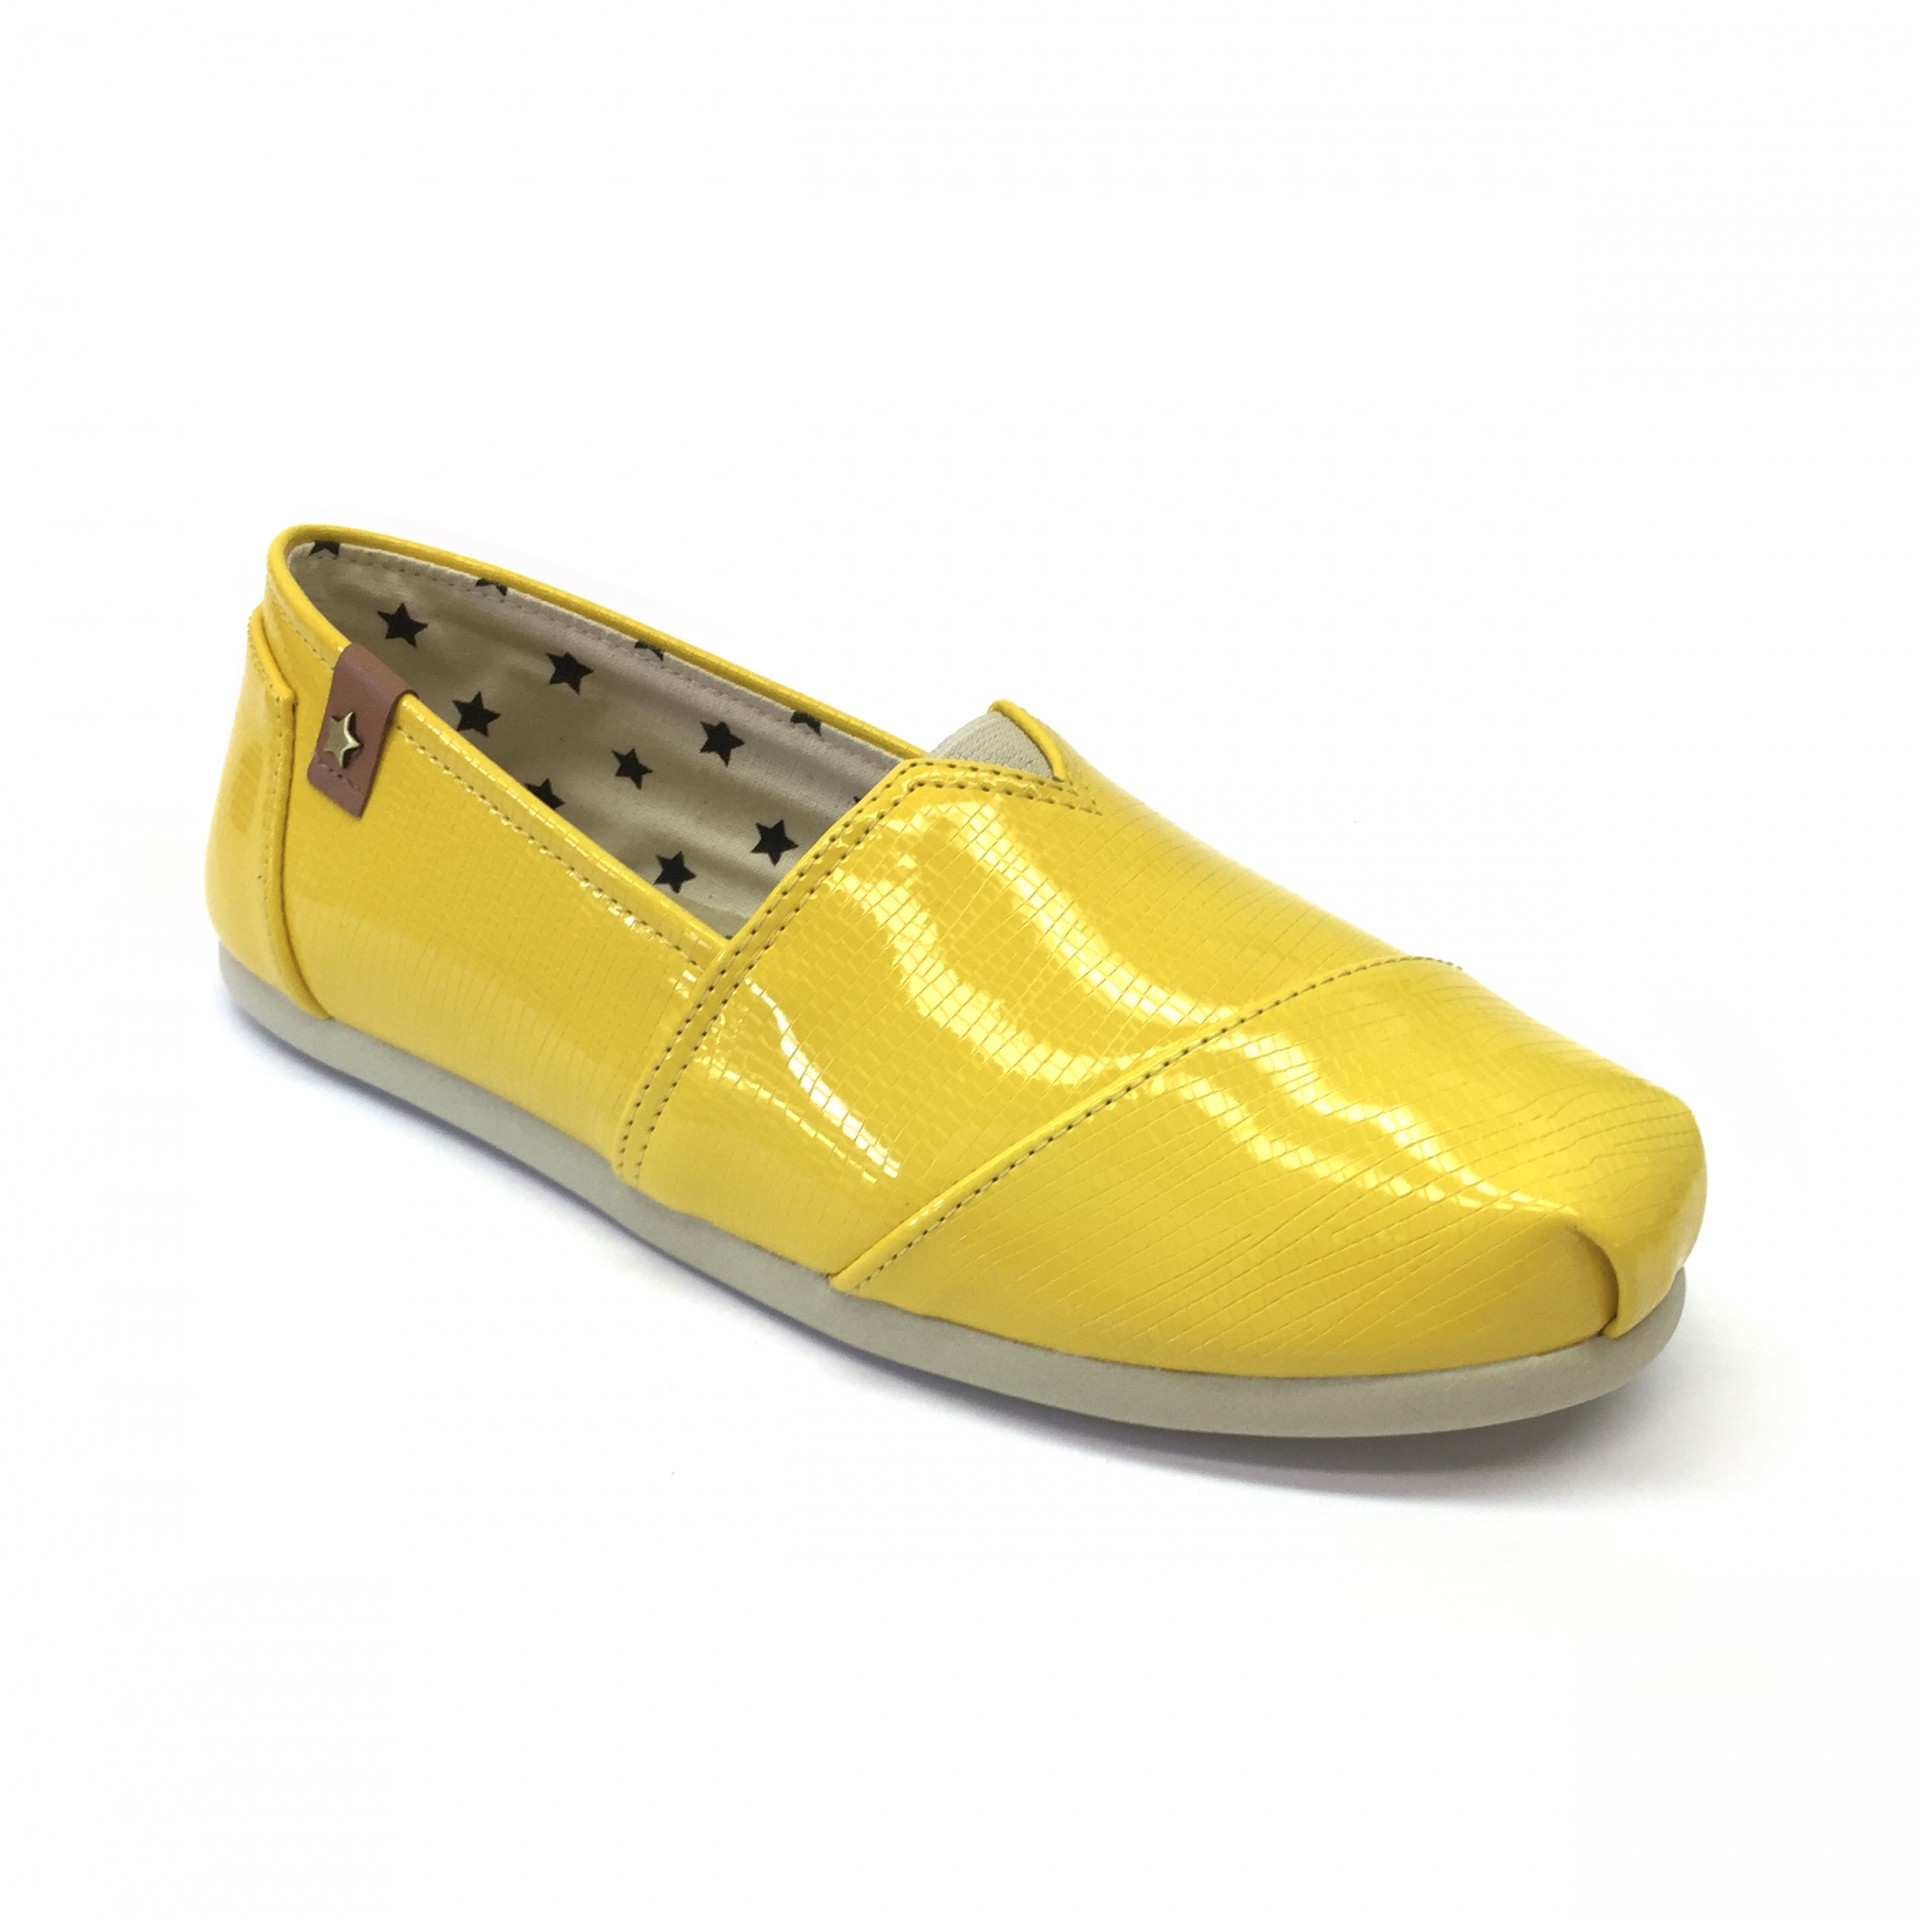 ALPARGATA CUBANAS HOLLY420YELLOW Yellow